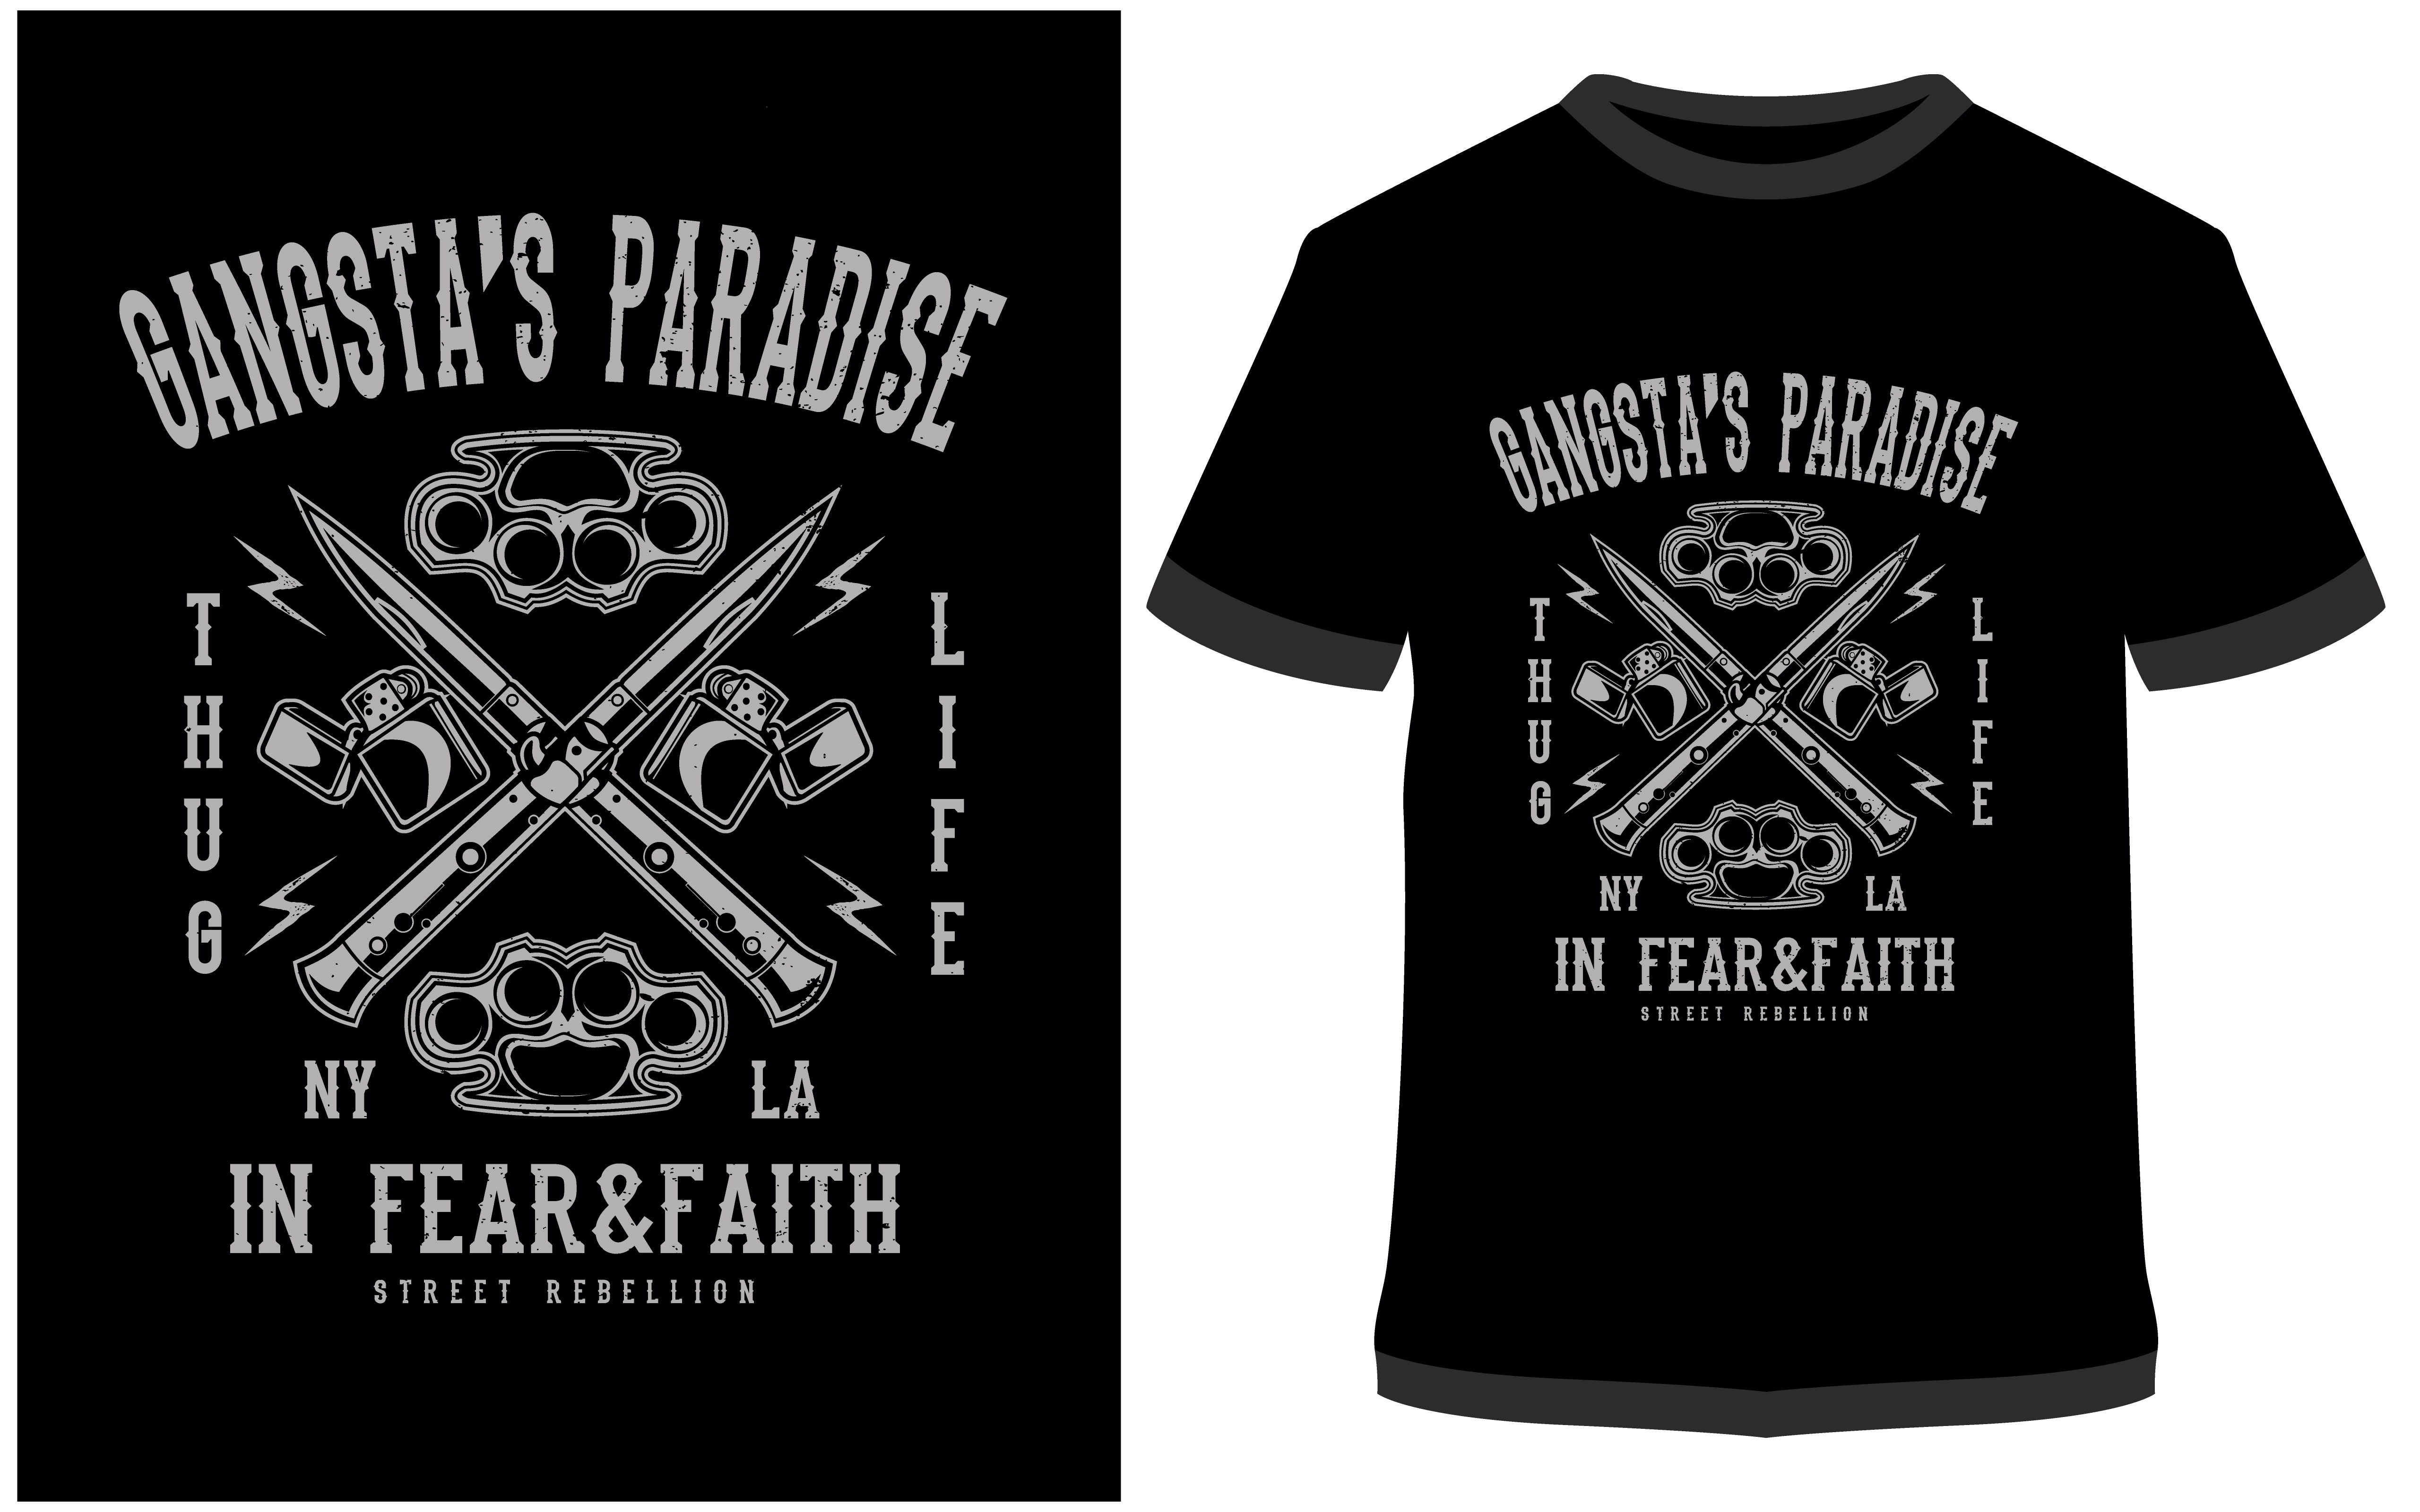 Download Free T Shirt Design Gangsta S Paradise Graphic By Prodesigns for Cricut Explore, Silhouette and other cutting machines.